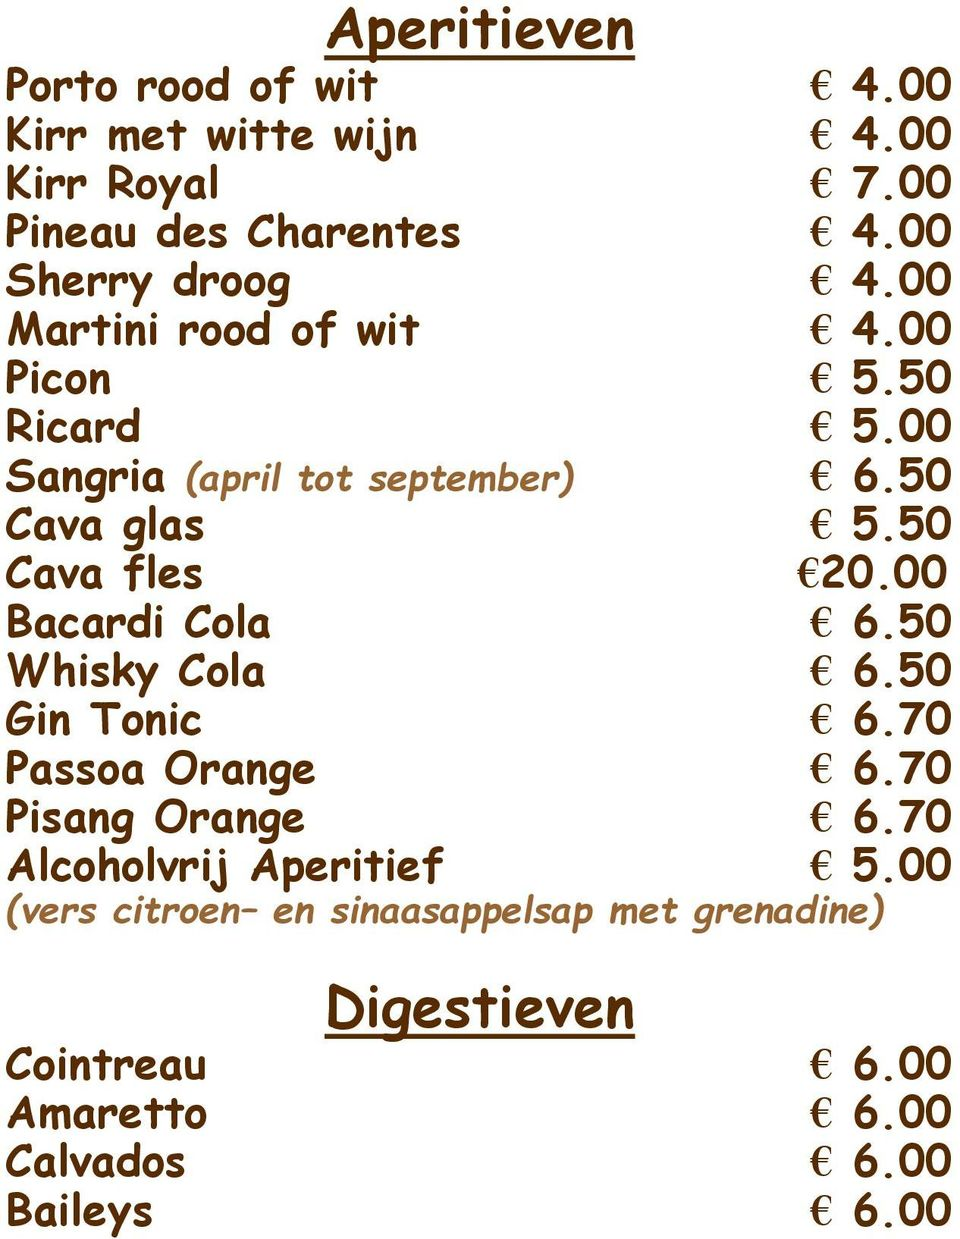 00 Sangria (april tot september) 6.50 Cava glas 5.50 Cava fles 20.00 Bacardi Cola 6.50 Whisky Cola 6.